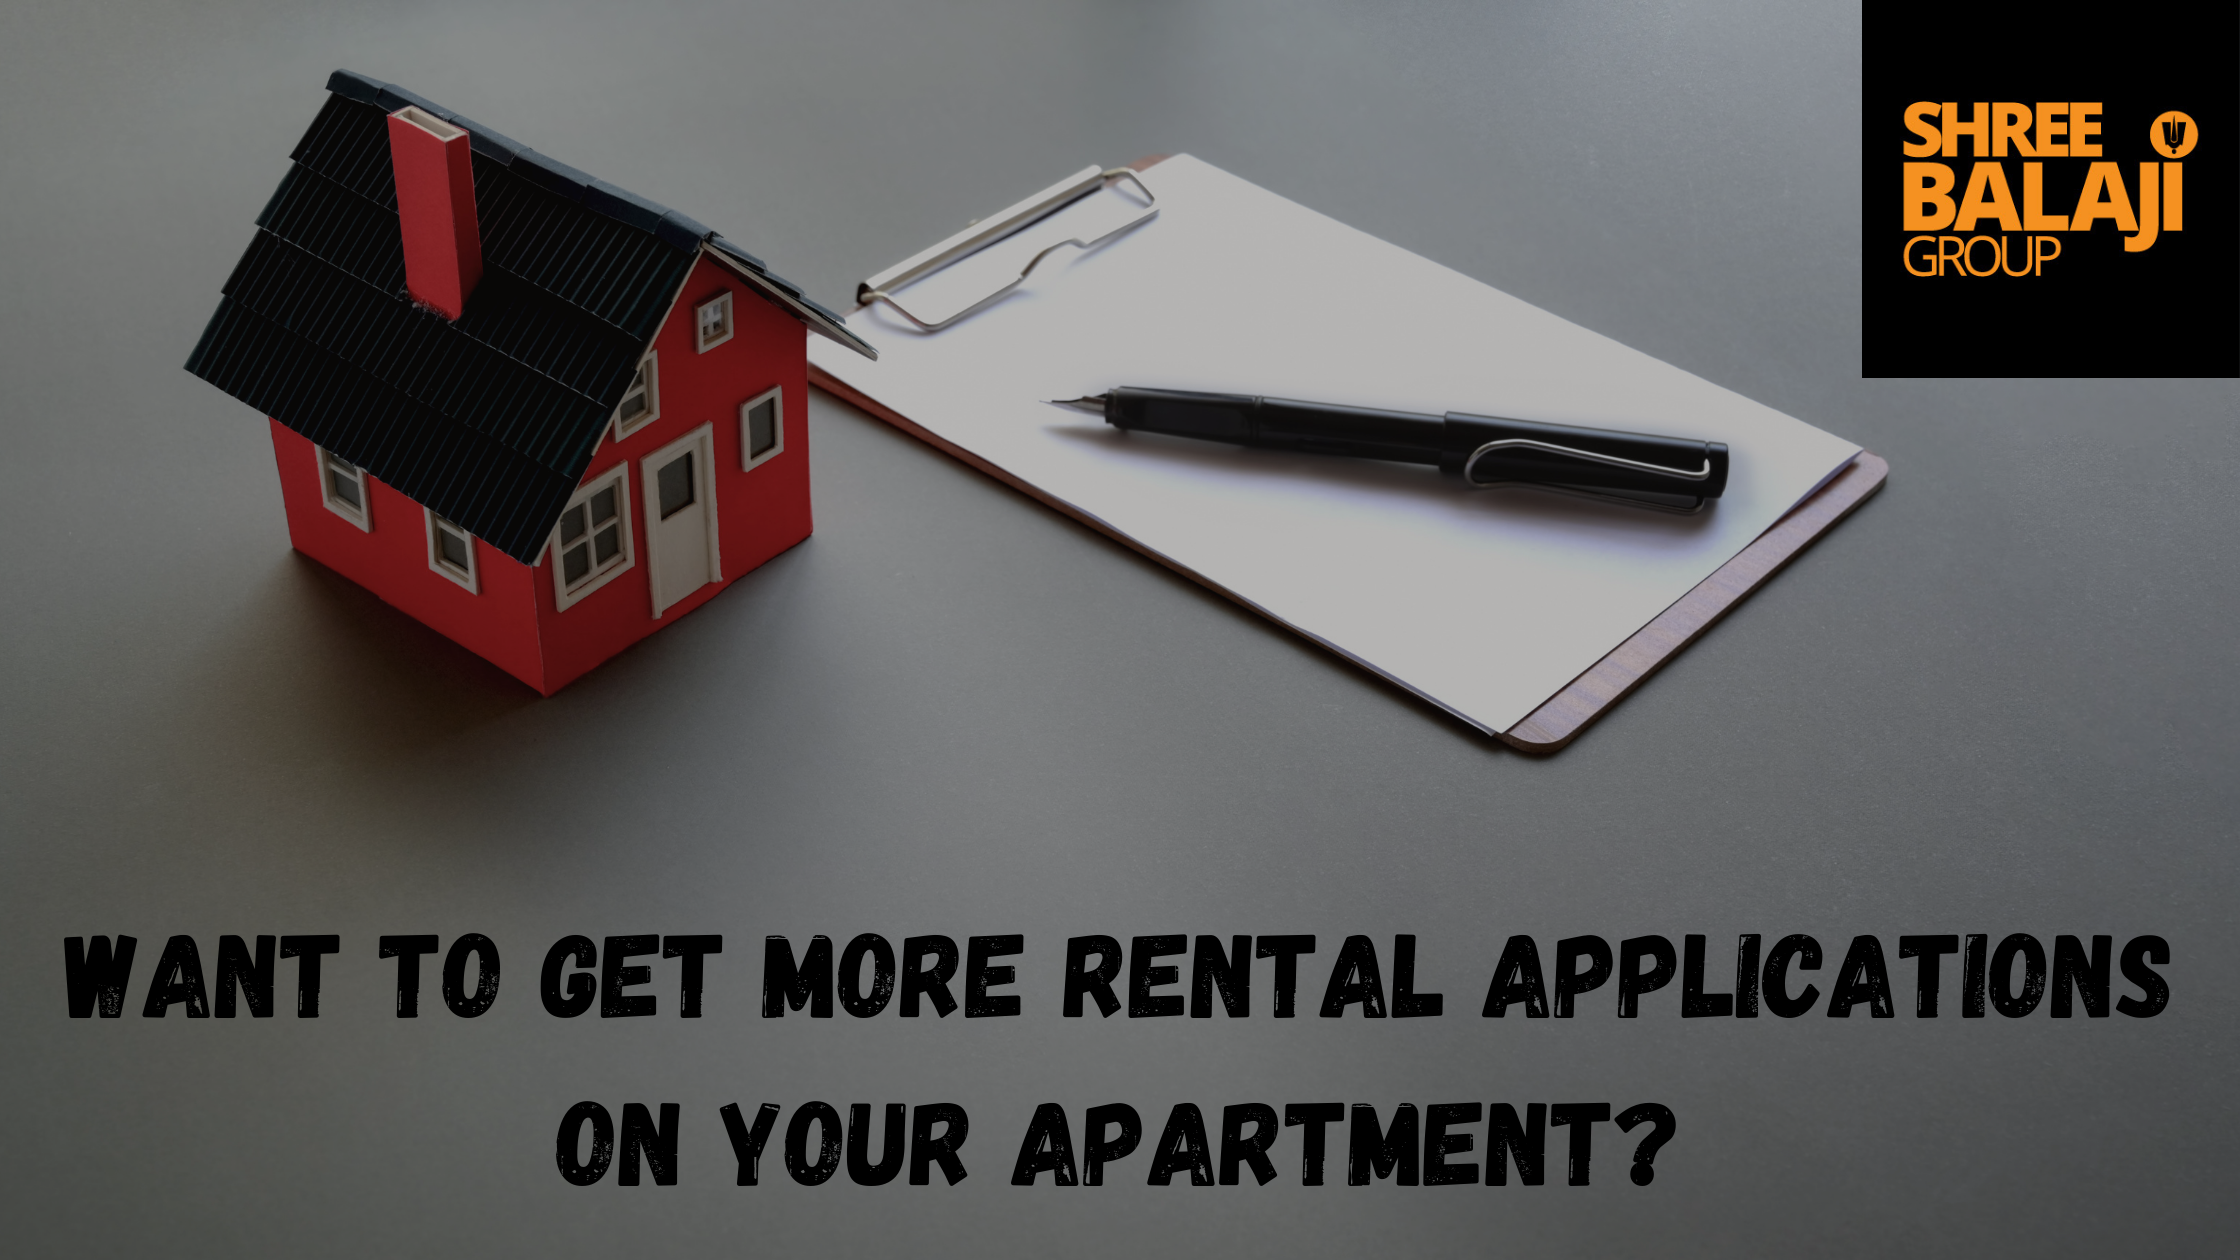 WANT TO GET MORE RENTAL APPLICATIONS ON YOUR APARTMENT?